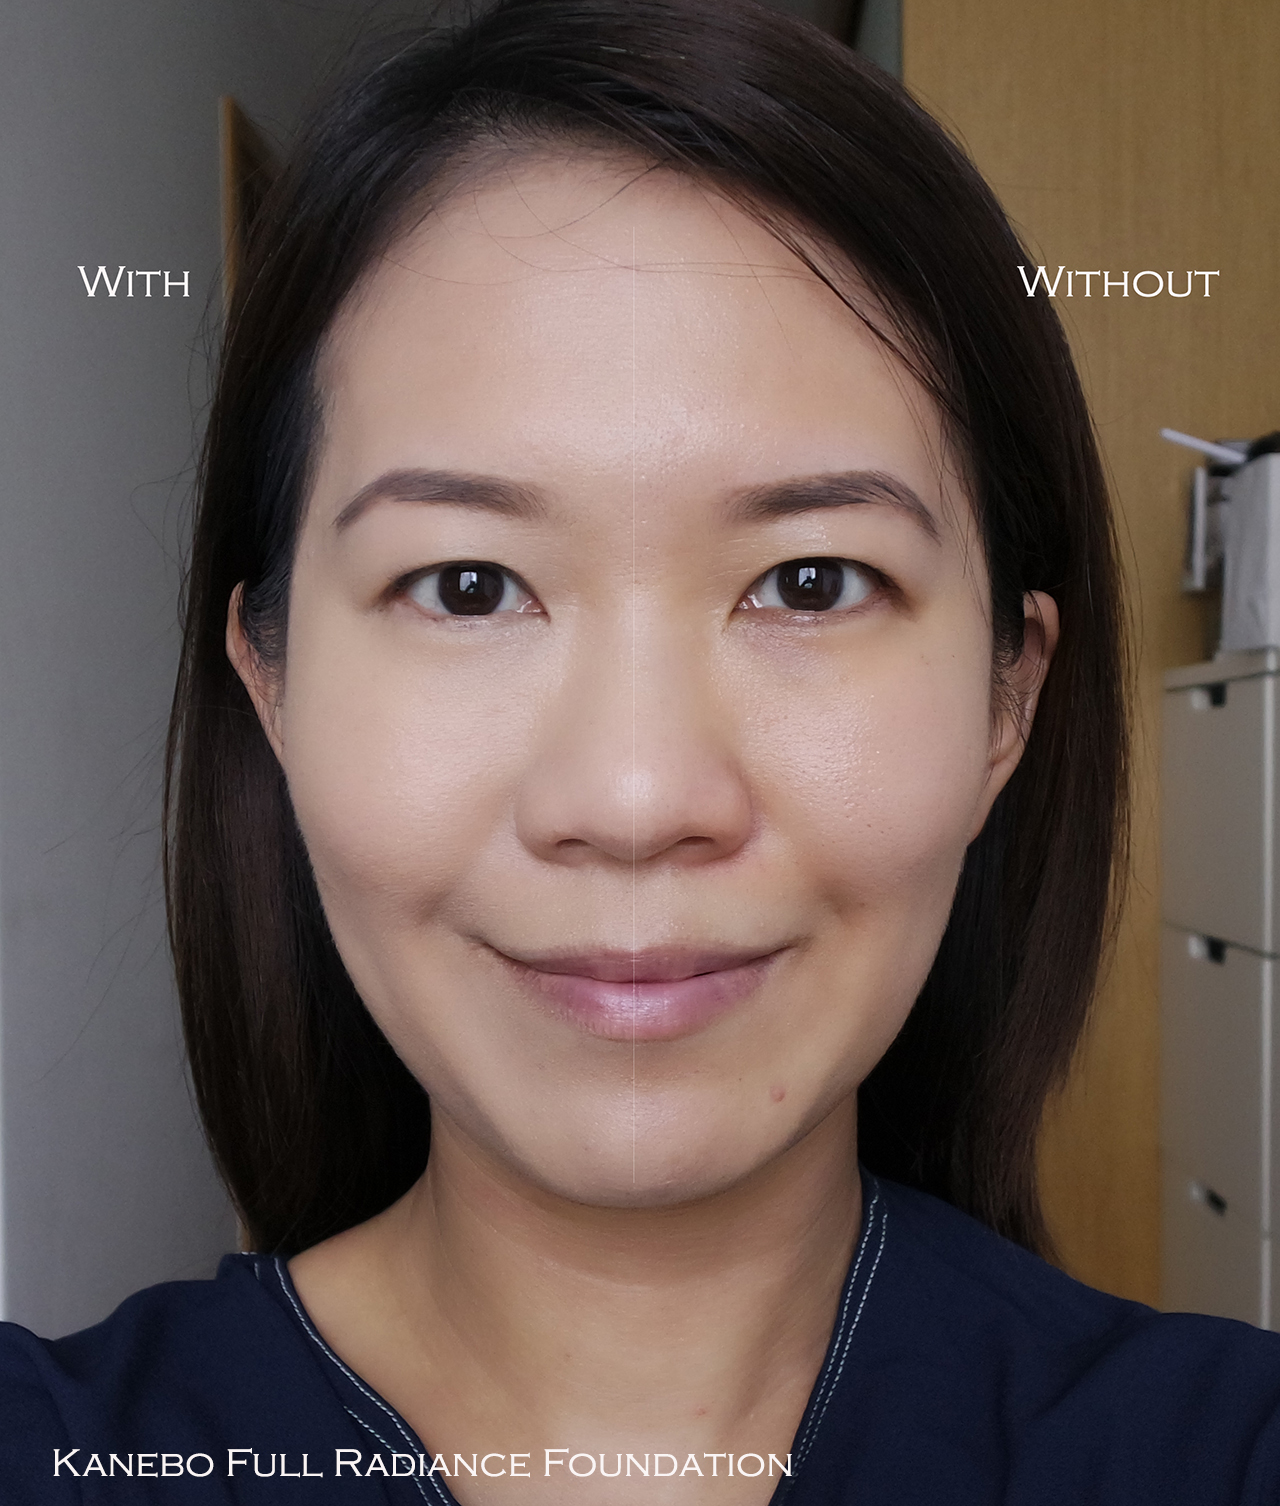 Kanebo Full Radiance Foundation before after comparison